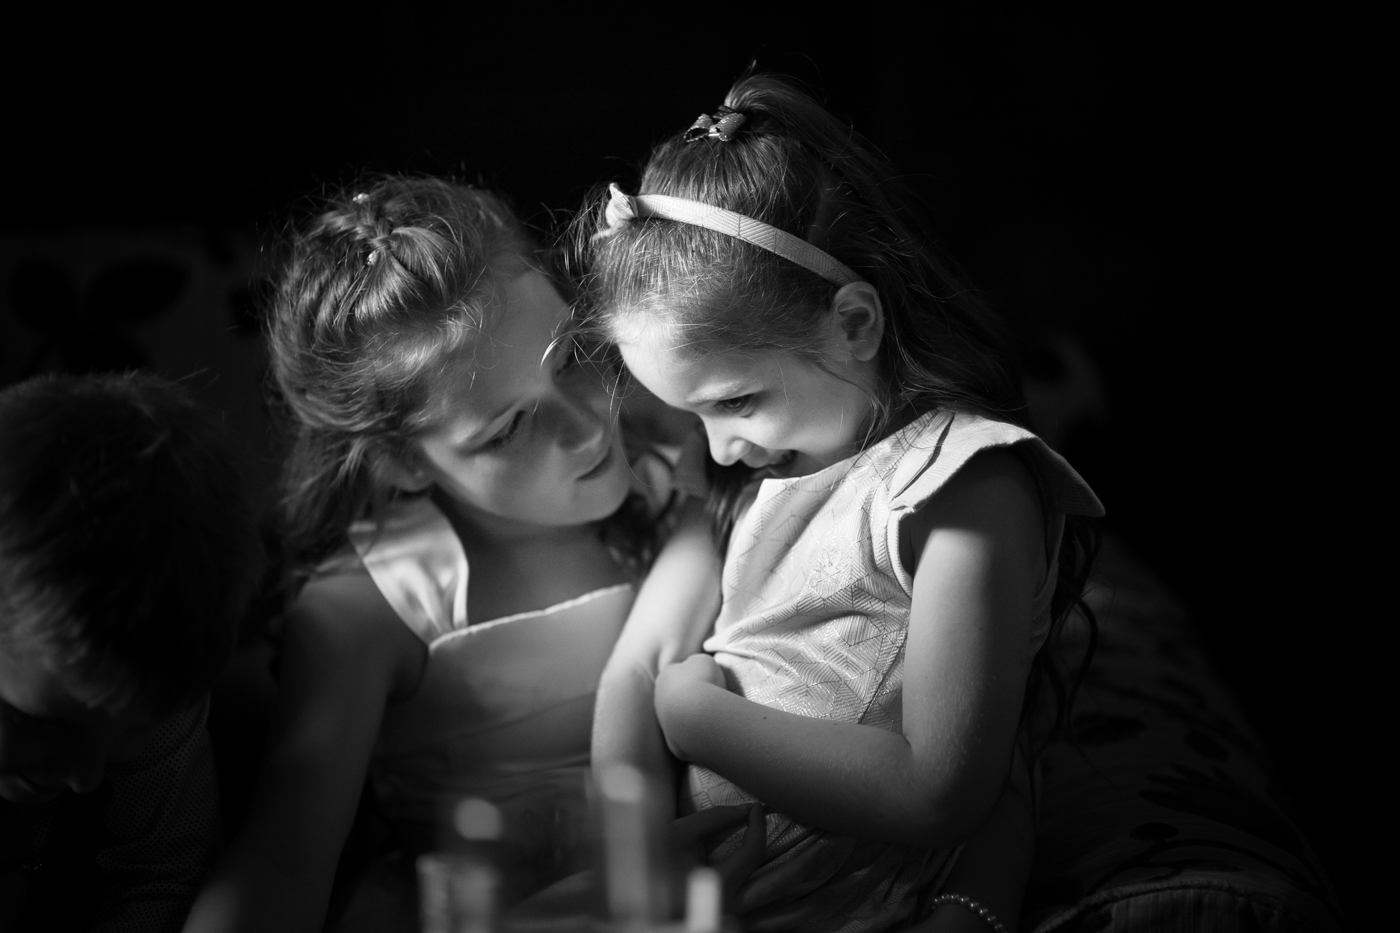 A MOMENT by Kevin Day